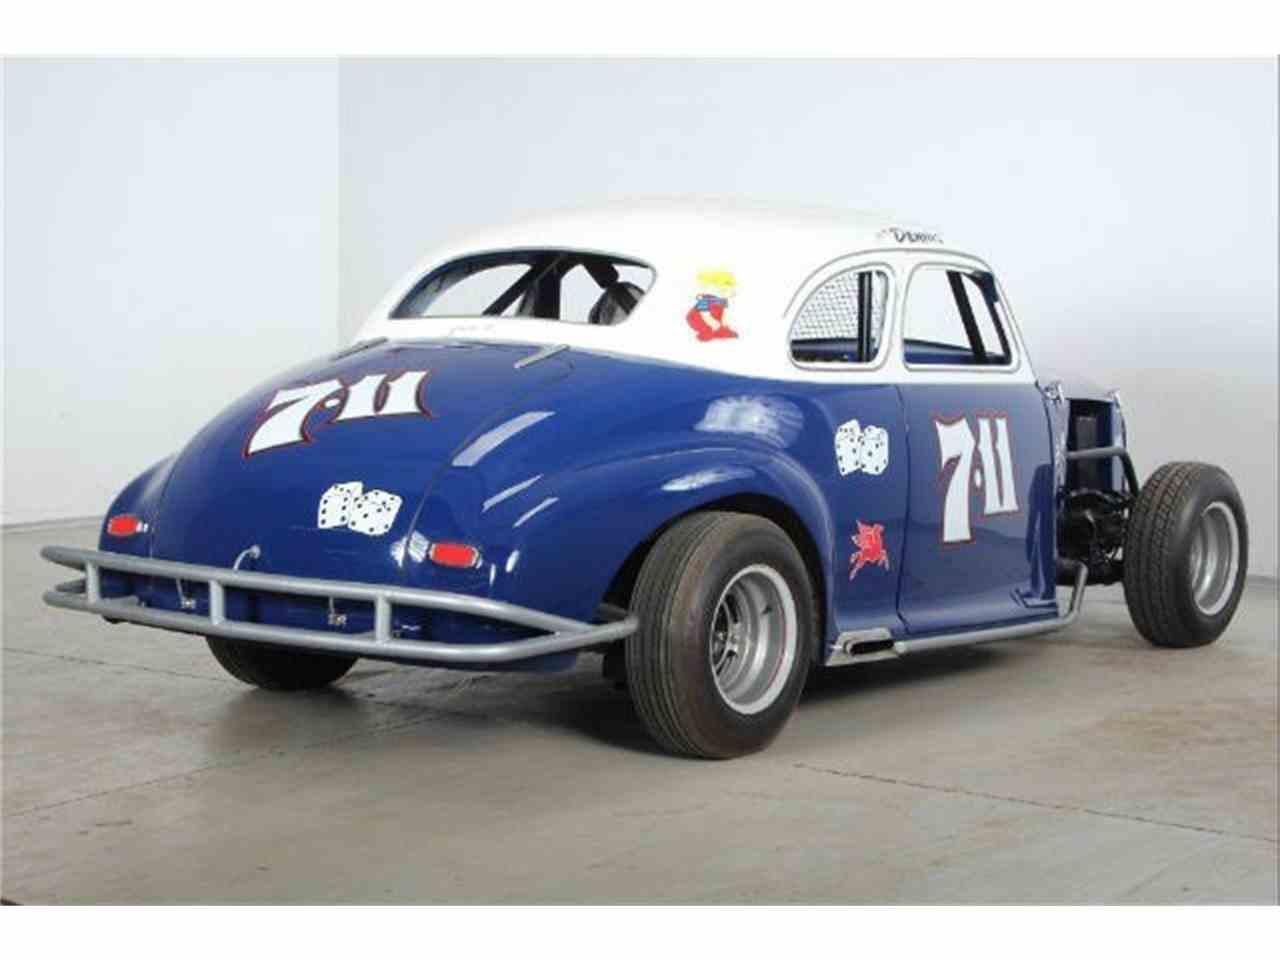 Large Picture of Classic 1942 Chevrolet Race Car - $7,900.00 - K99A